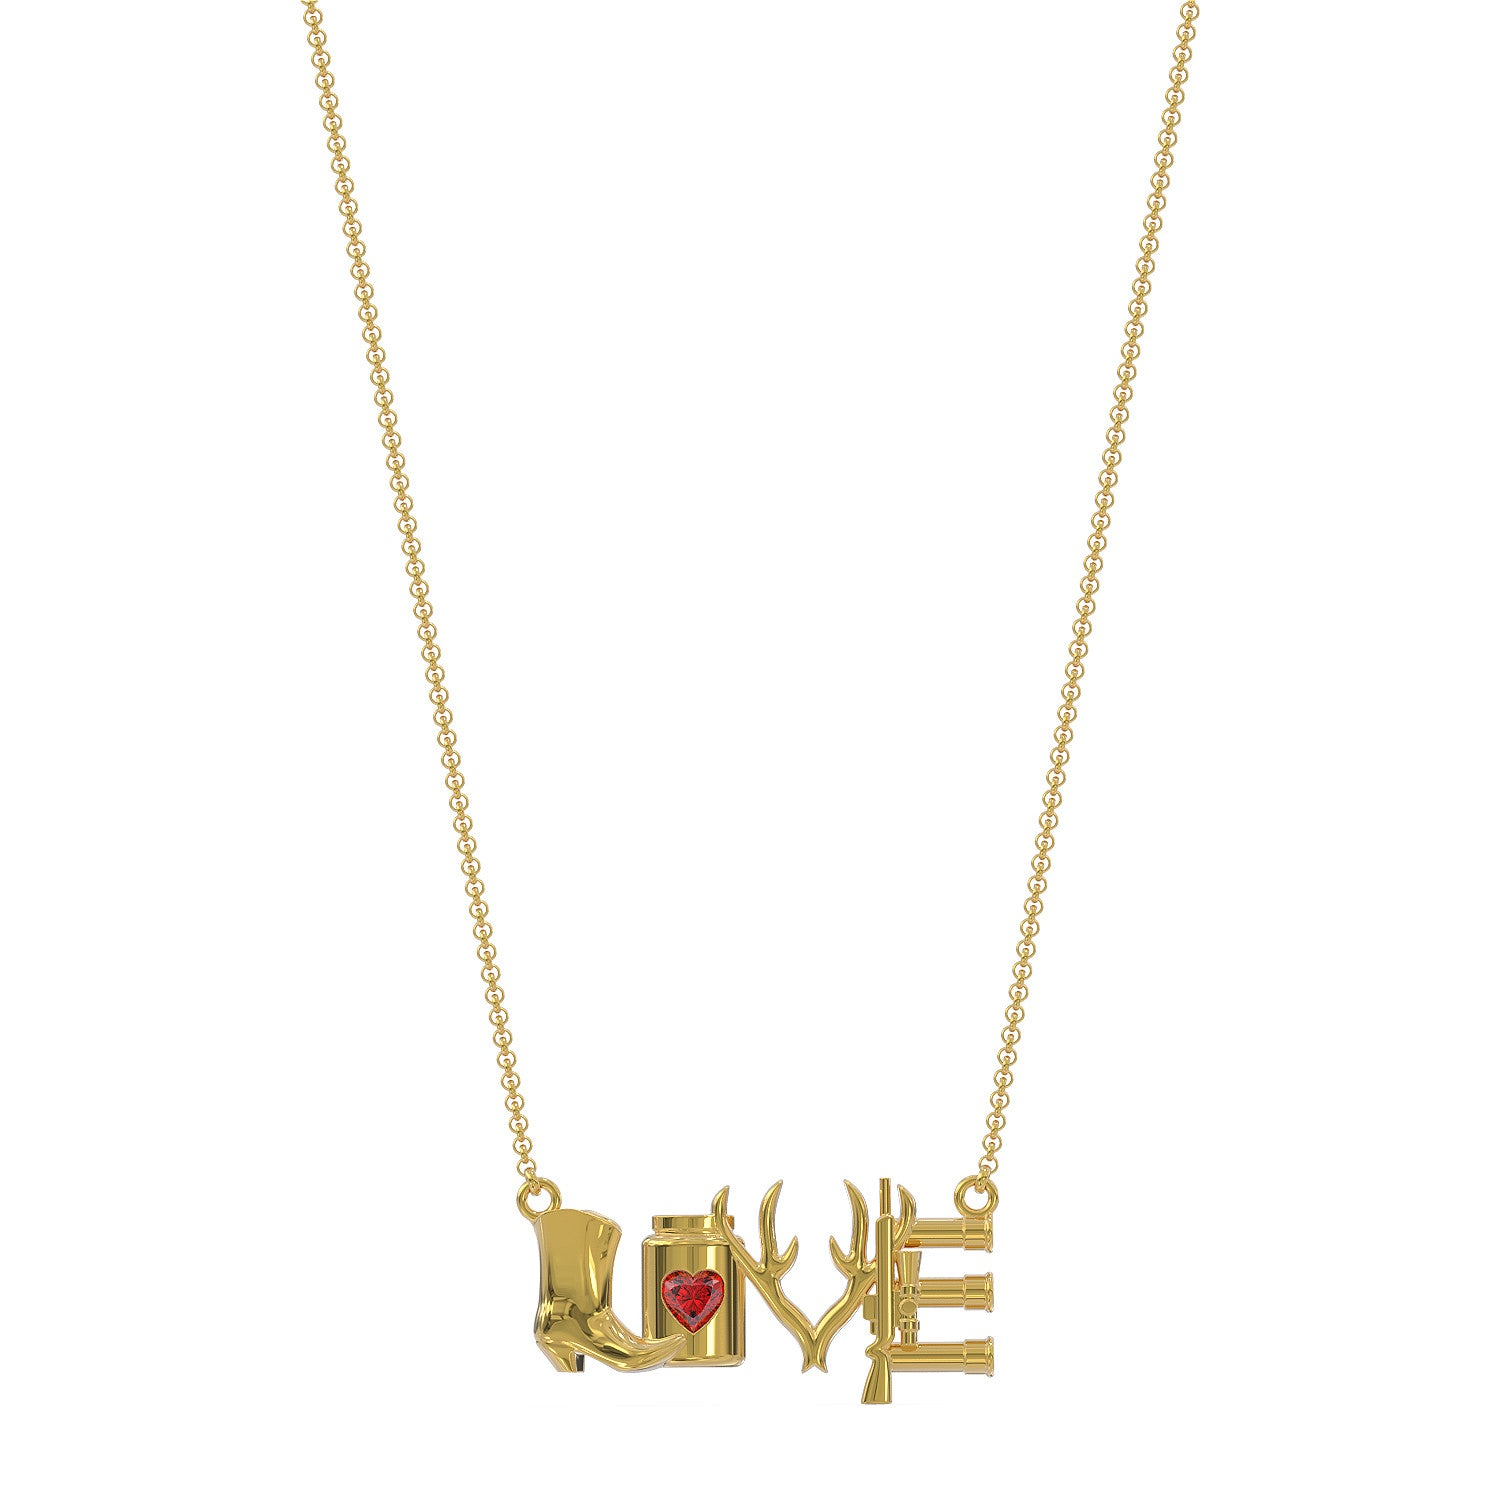 Country Love Necklace